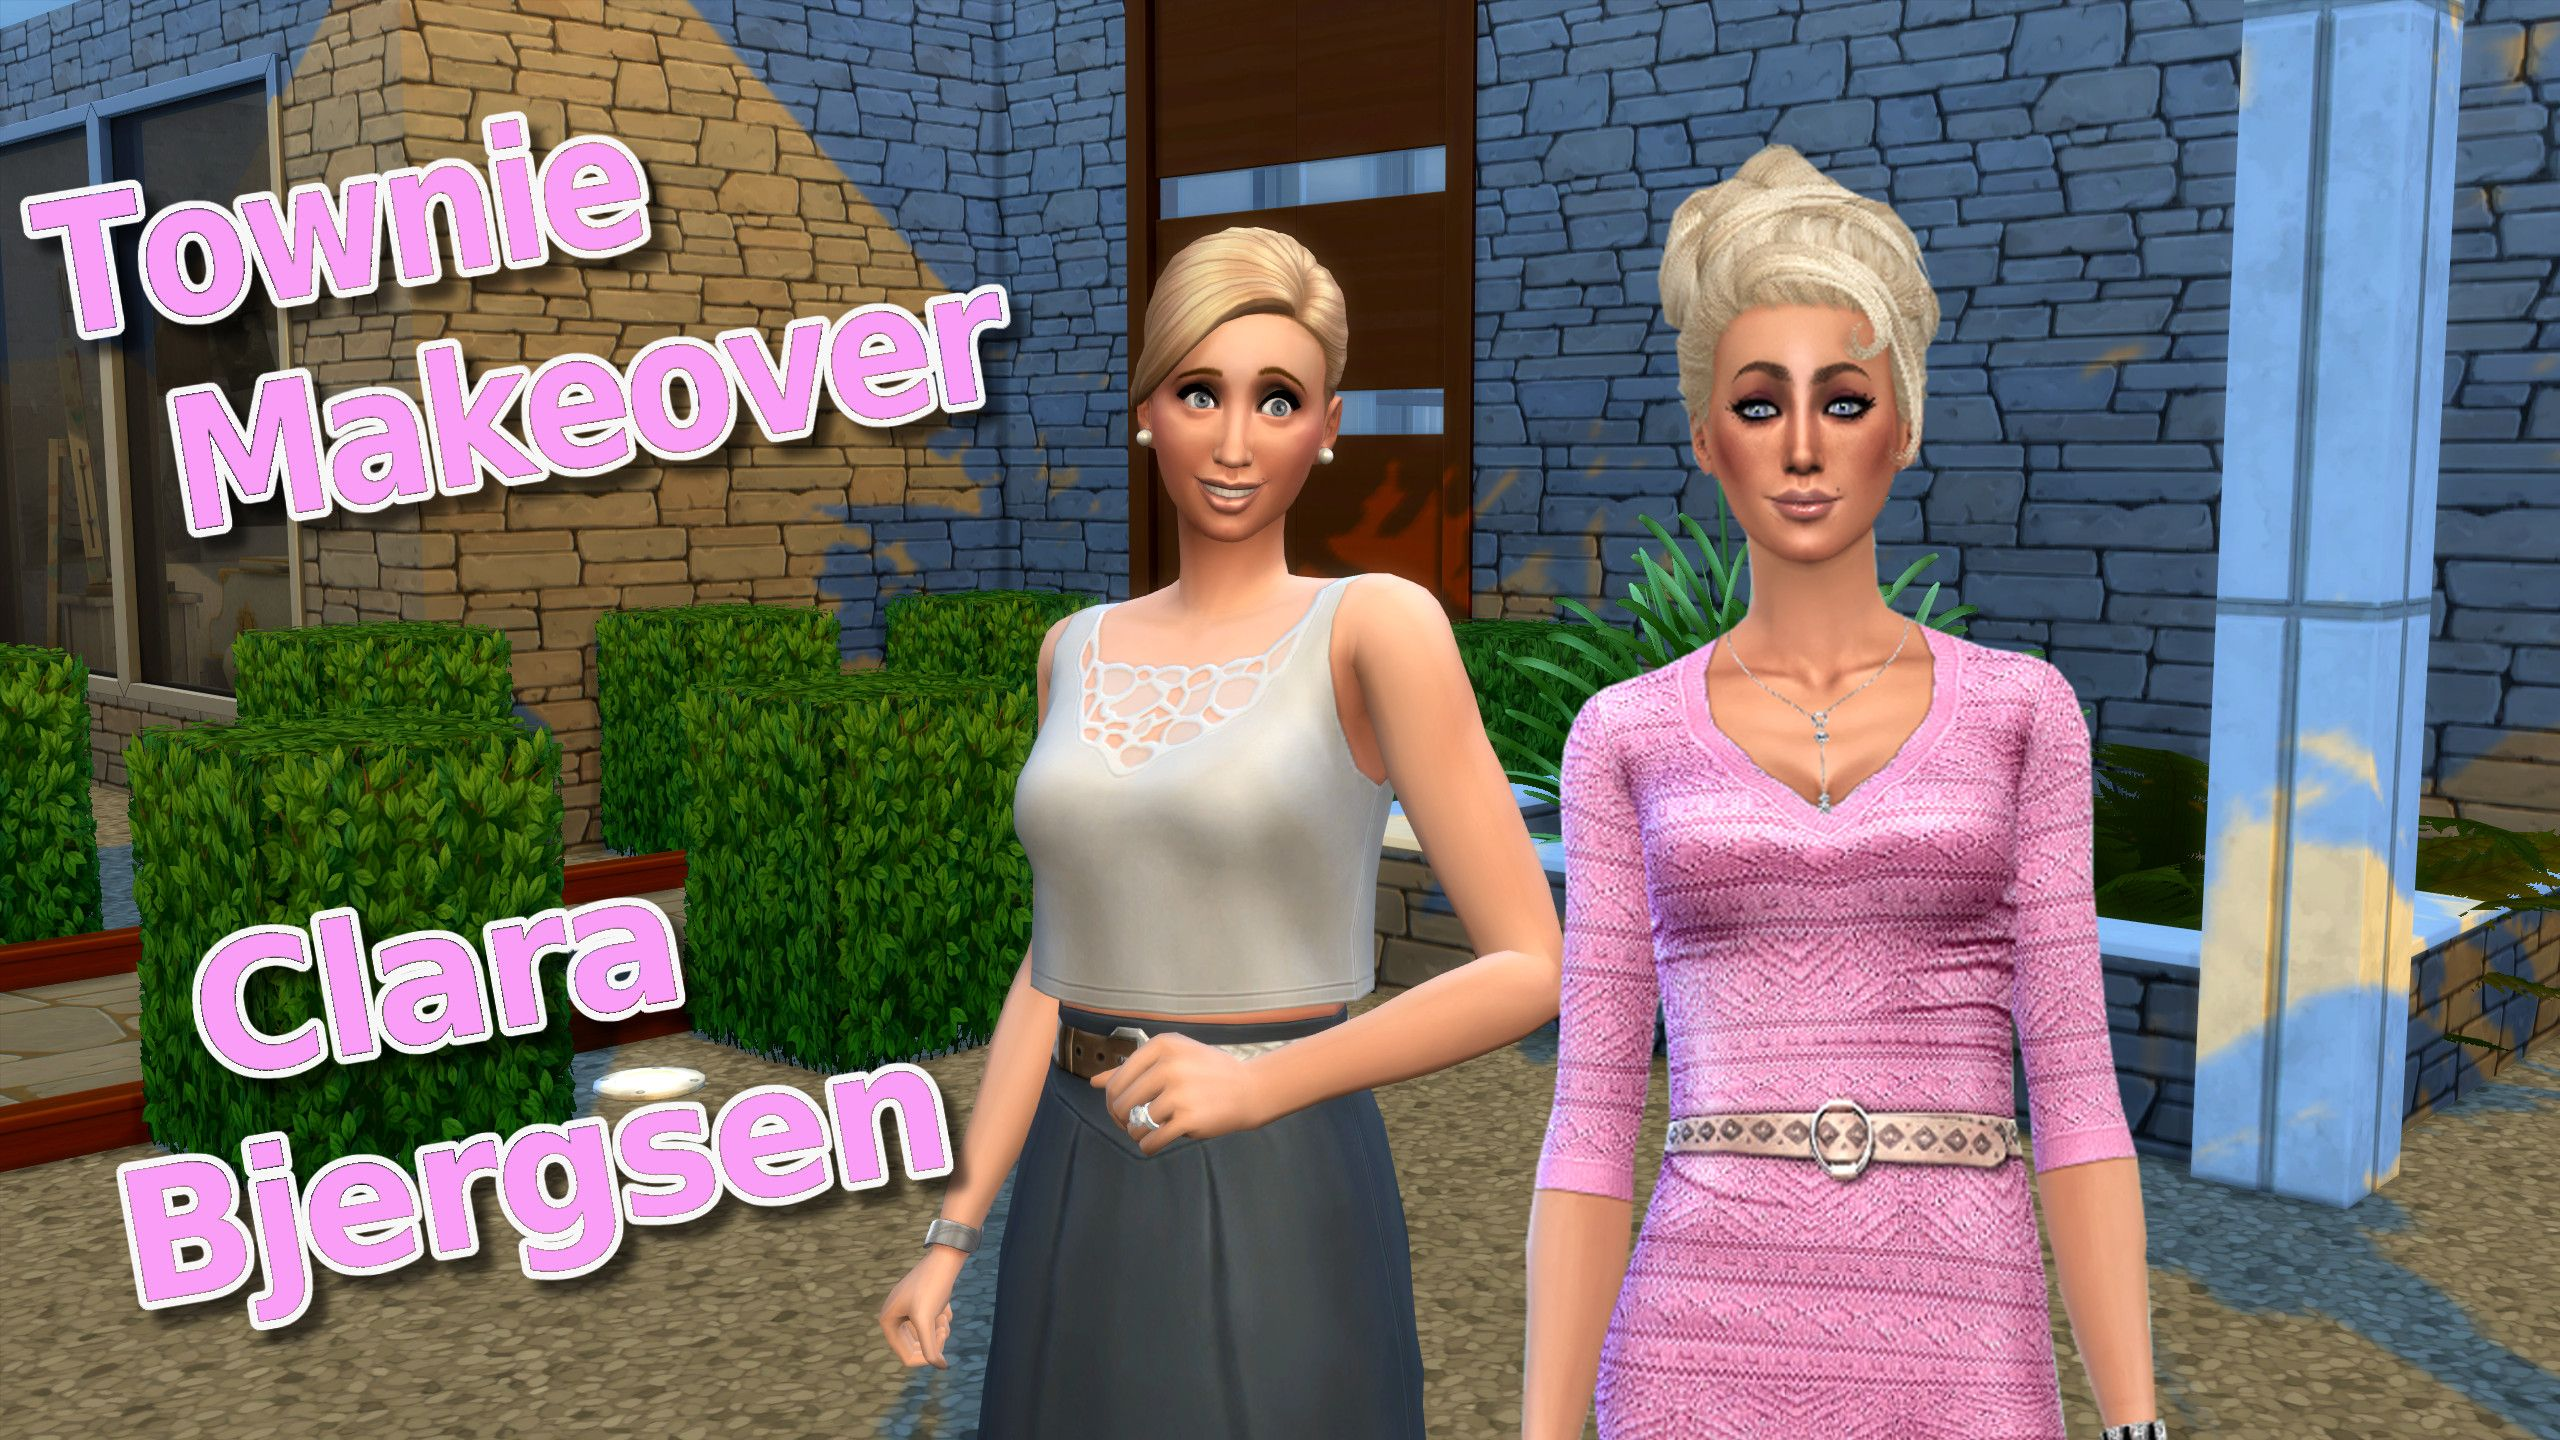 I gave #ClaraBjersen a new #TownieMakeover from #Windenburg